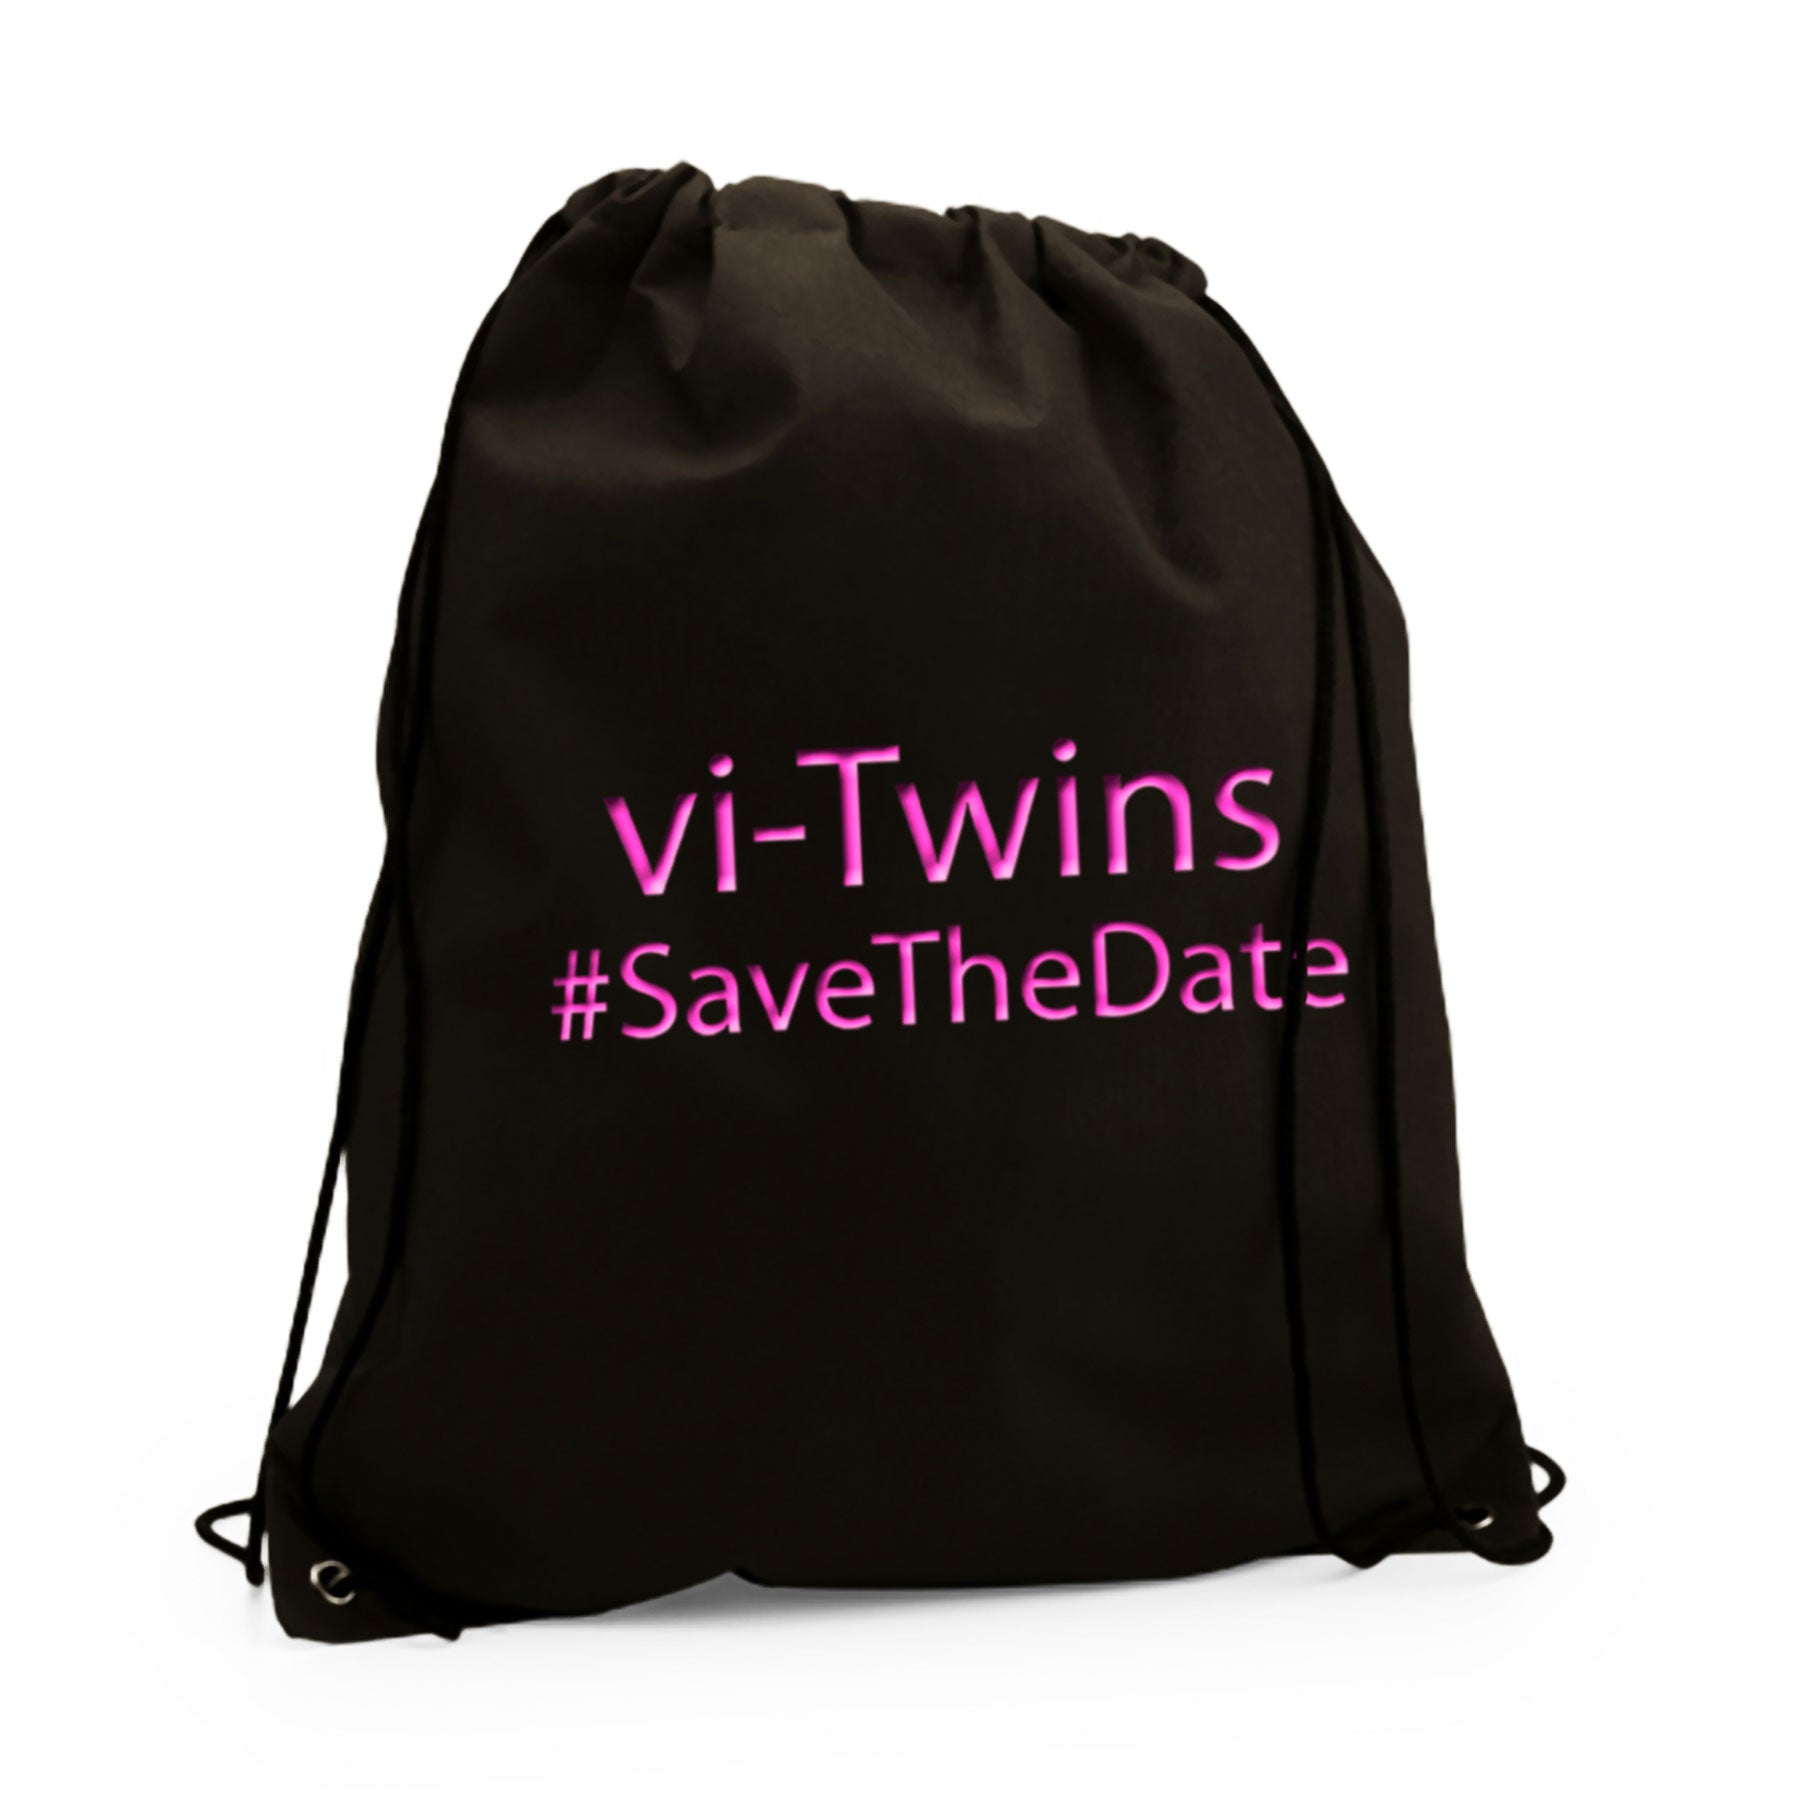 vi-Twins - Mochila Save The Date - Merchanfy Imprime tus camisetas